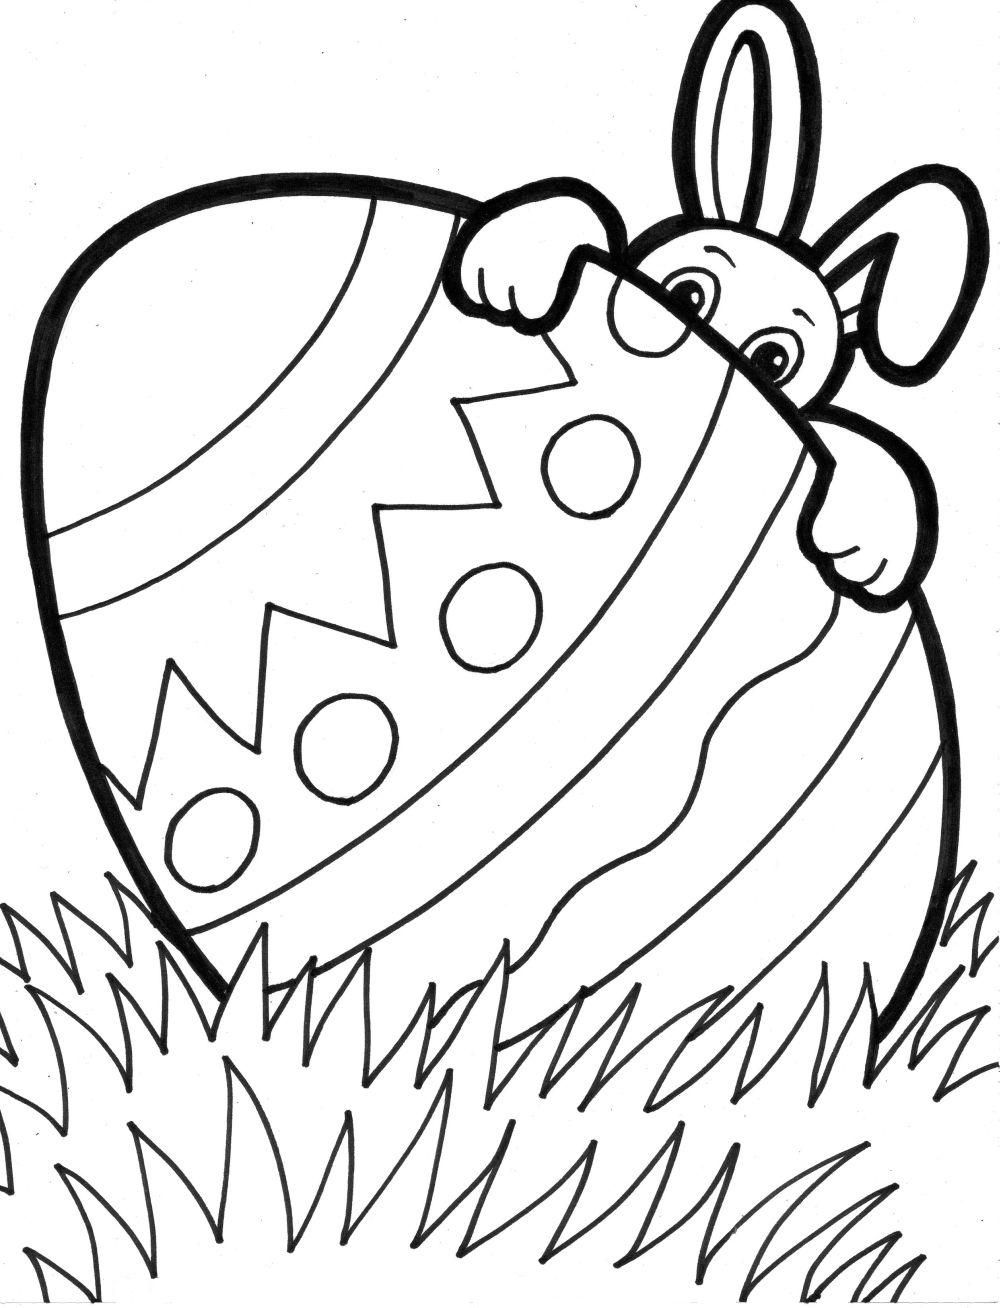 Printable coloring pages of easter - 16 Super Cute And Free Easter Printable Coloring Pages For Kids